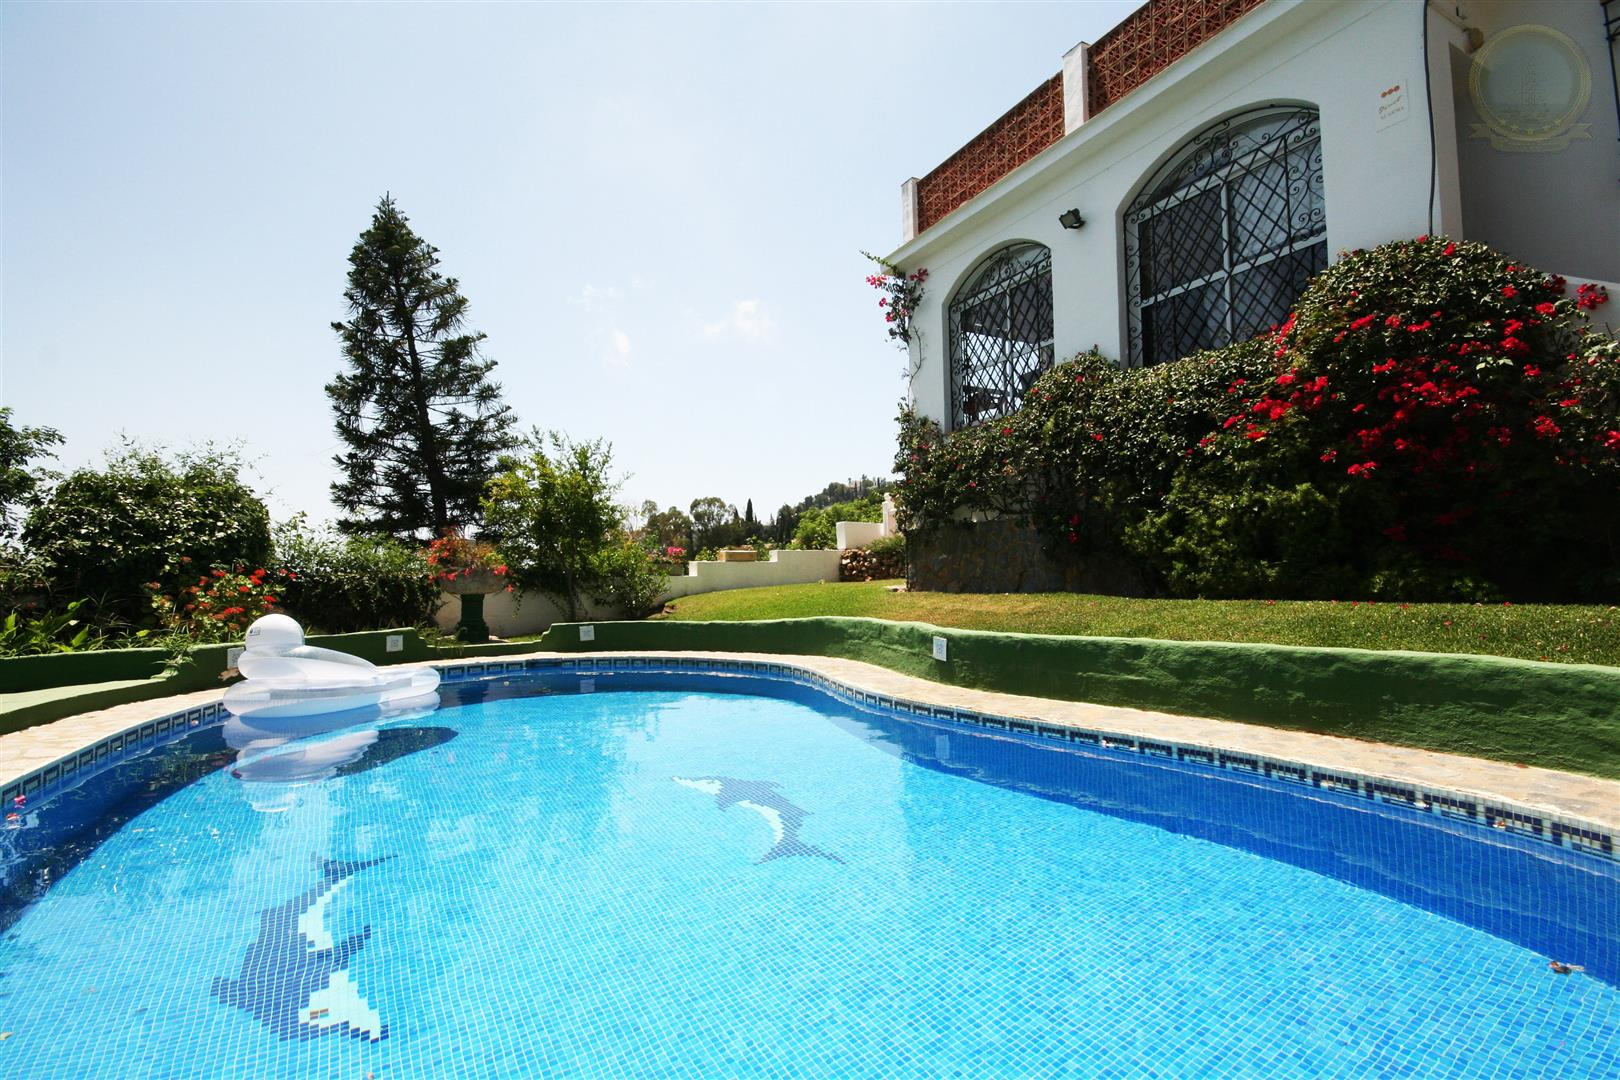 Villa for Sale in Benalmadena Pueblo - Pool and garden